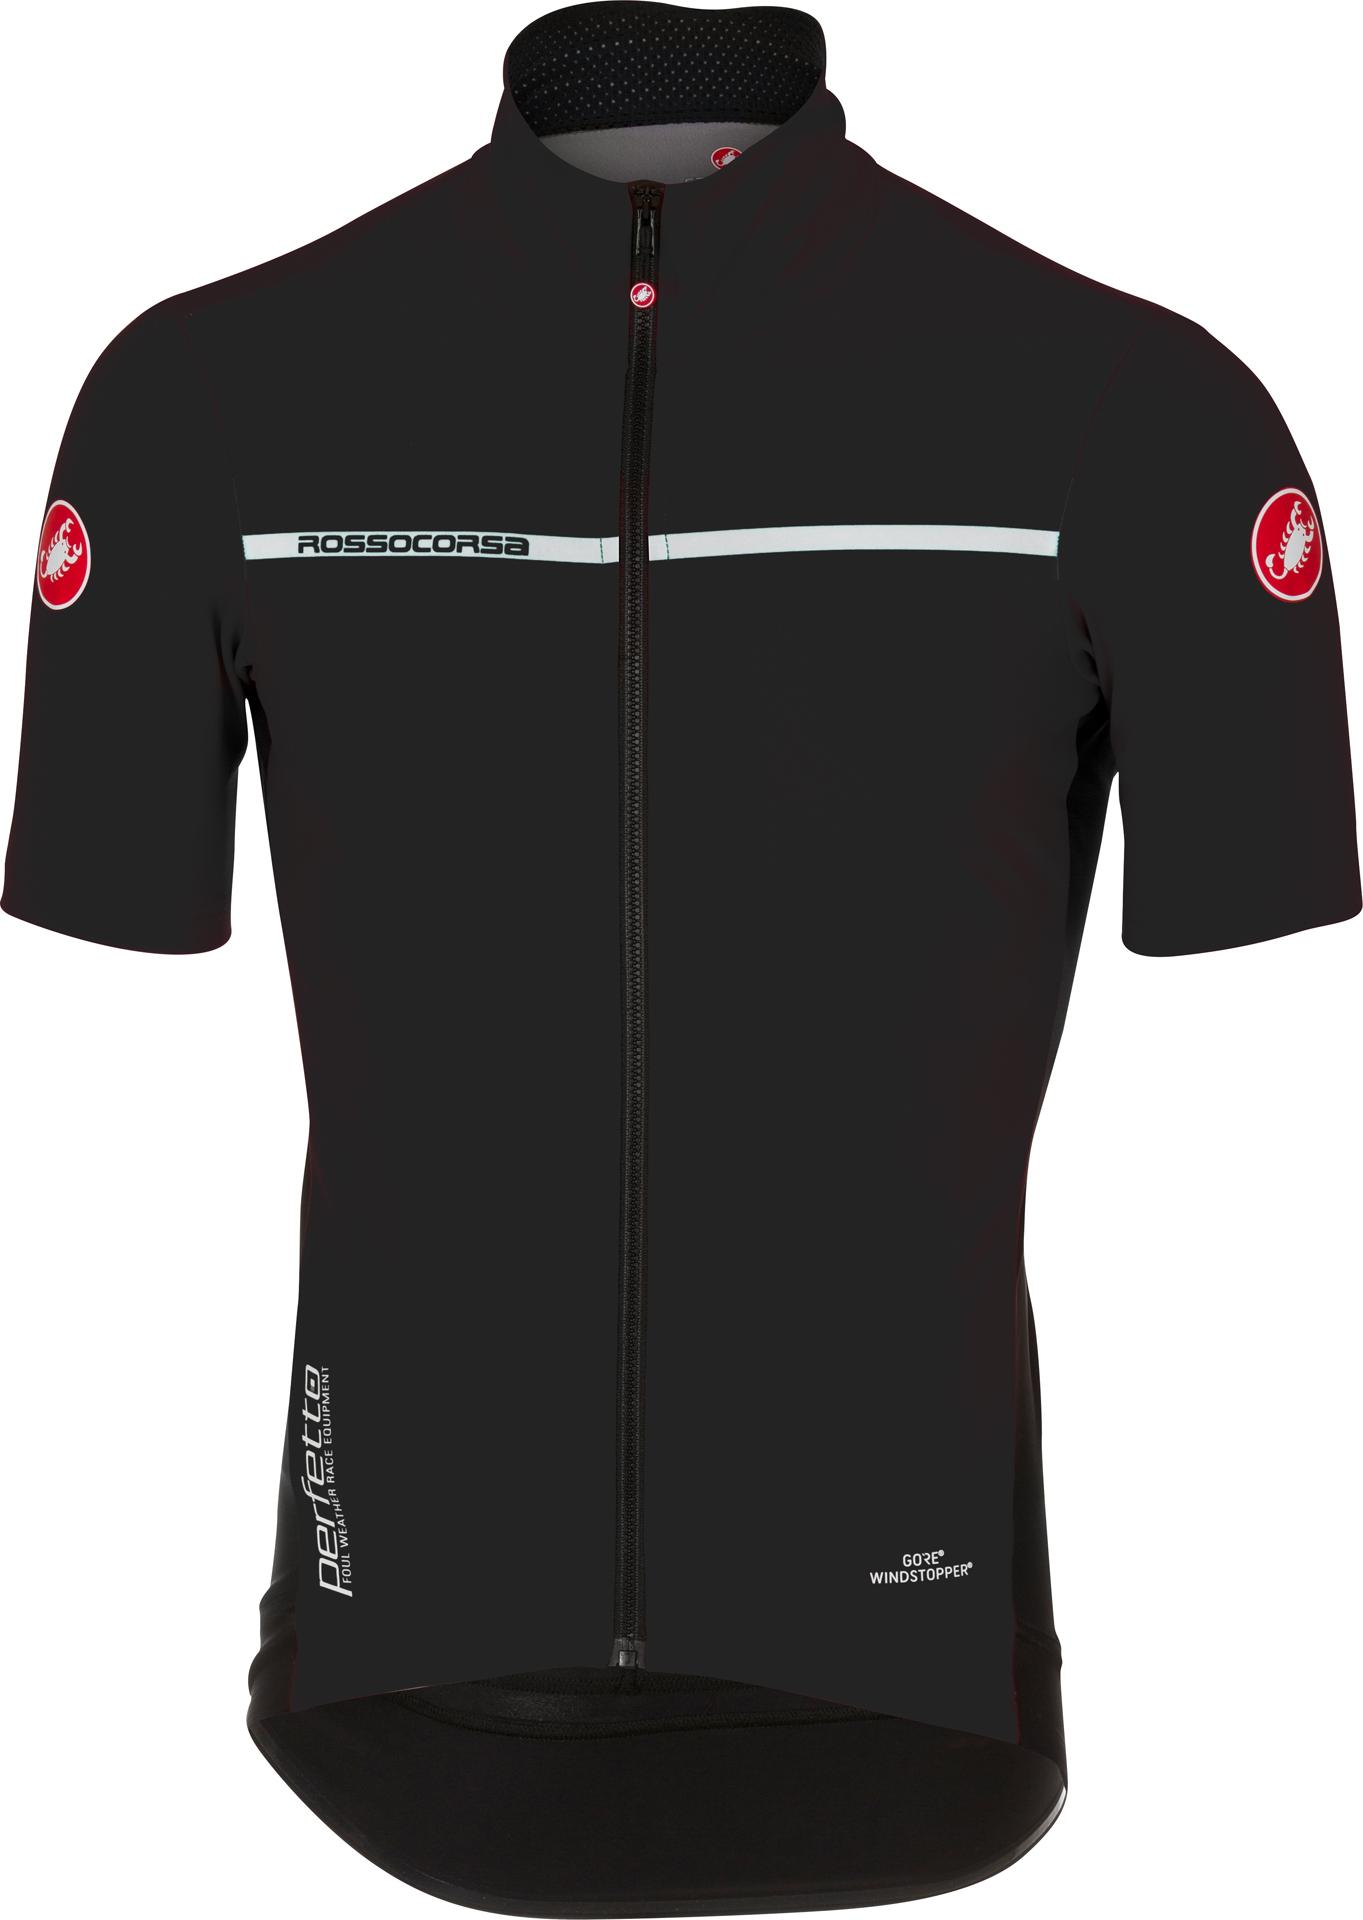 Castelli Fietsshirt korte mouwen waterafstotend Heren Zwart Wit / CA Perfetto Light 2 Light Black